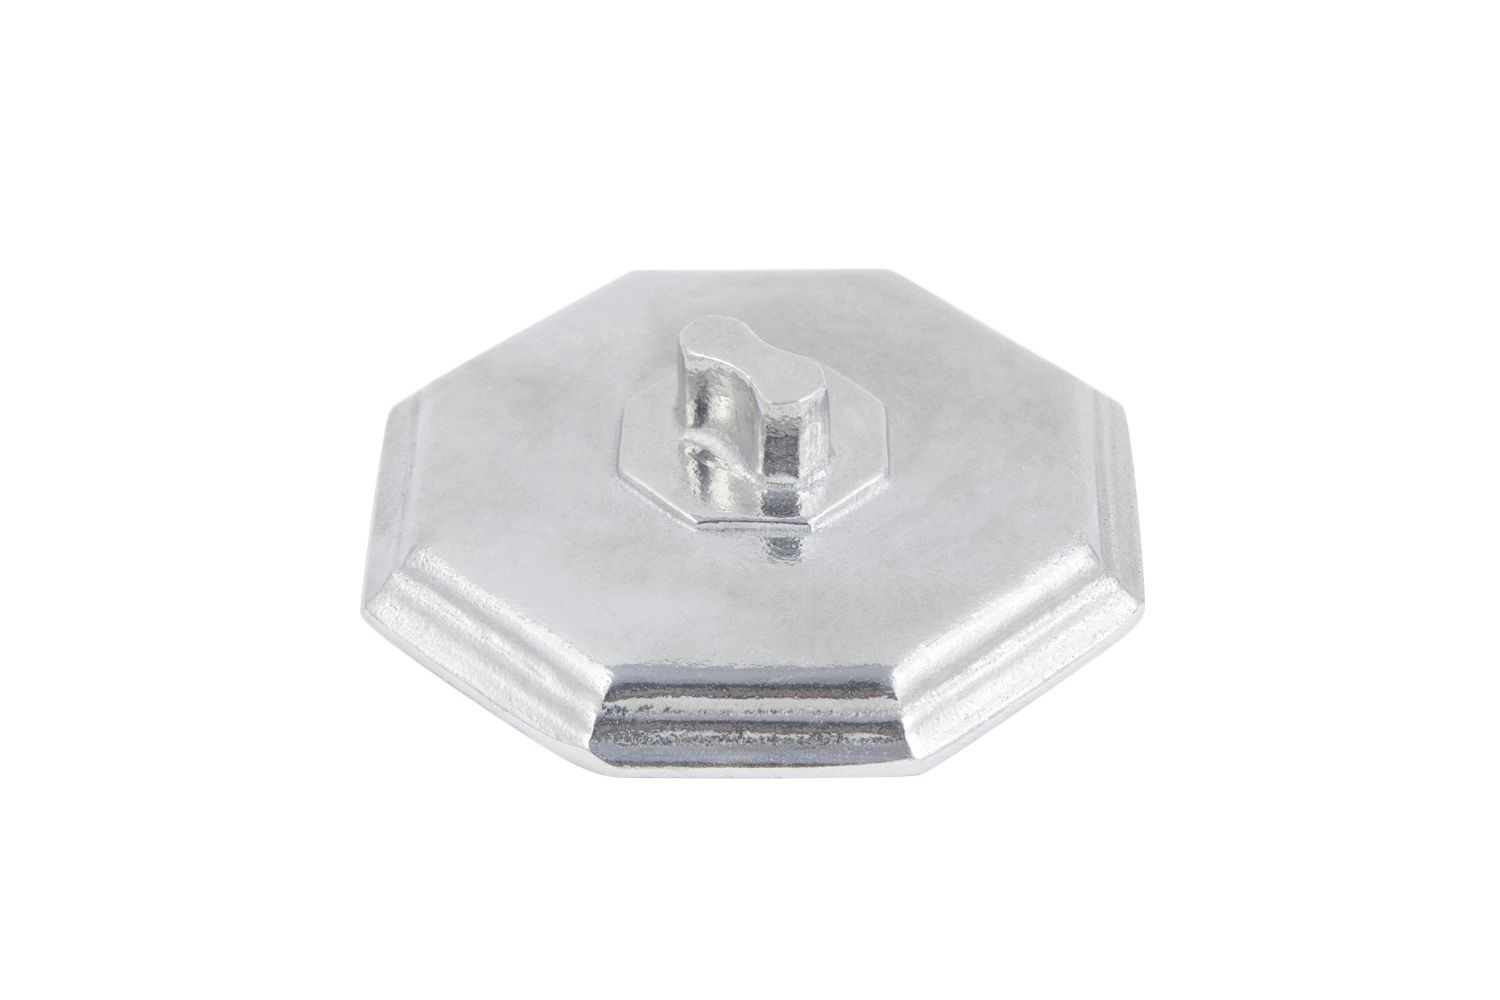 Bon Chef 3038CP Octagonal Soup Bowl Cover for 3038, Pewter Glo, Set of 6